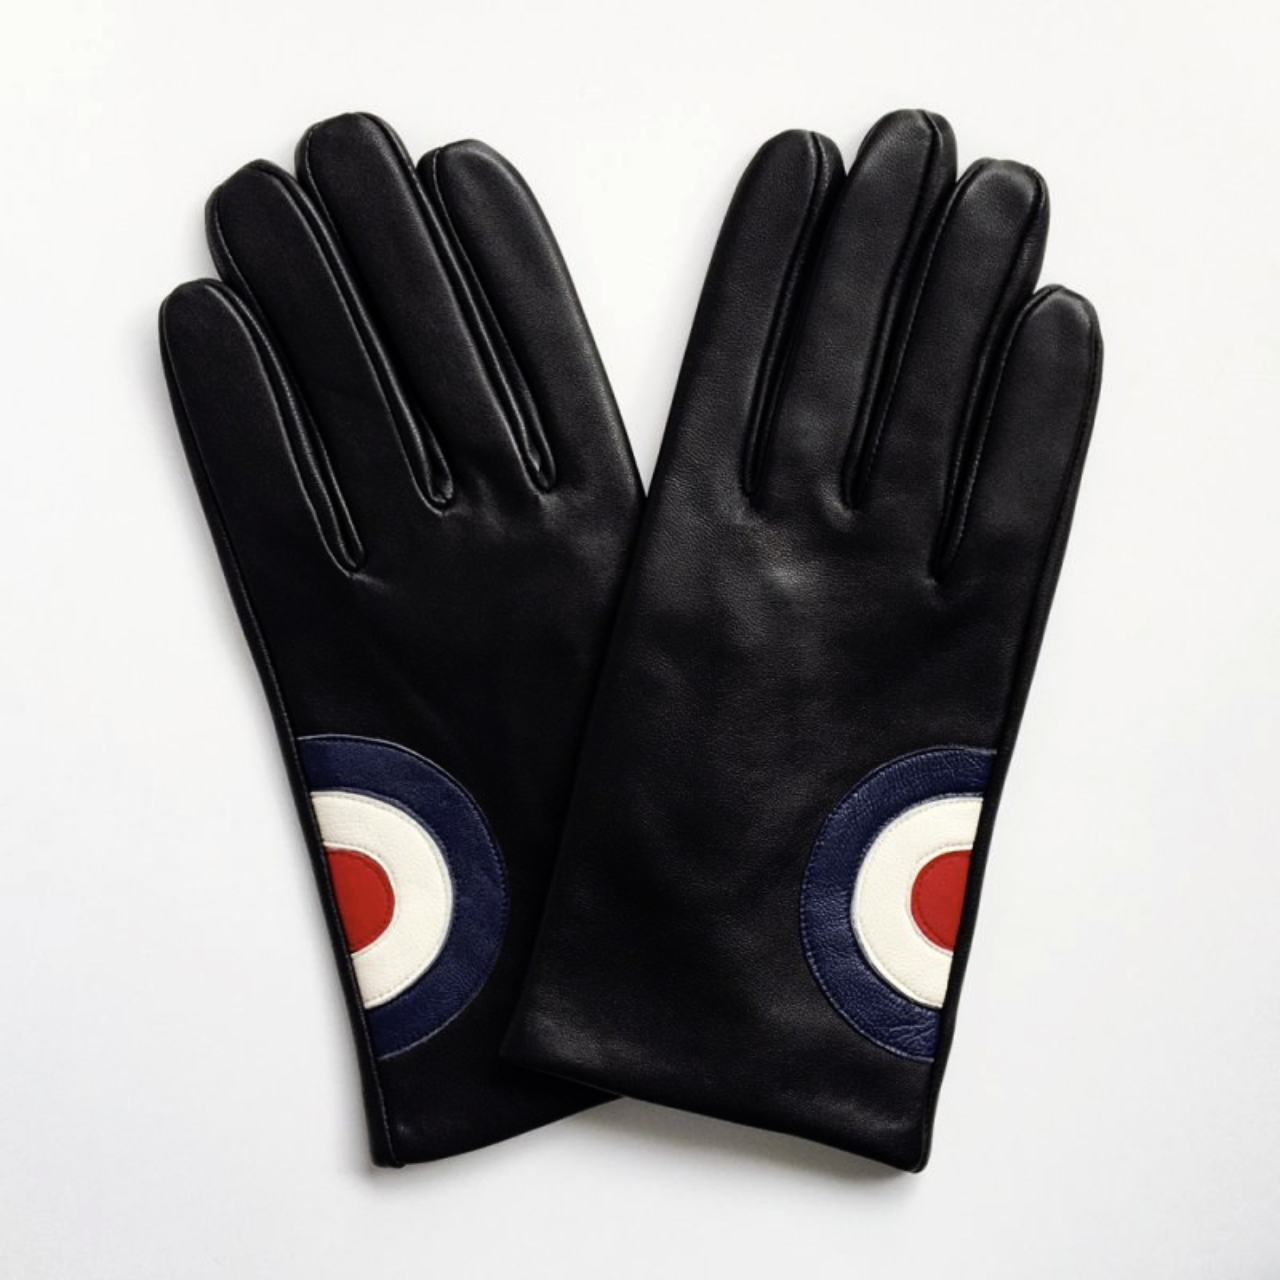 Frederick Sheppard | Mod Target Leather Gloves - Black